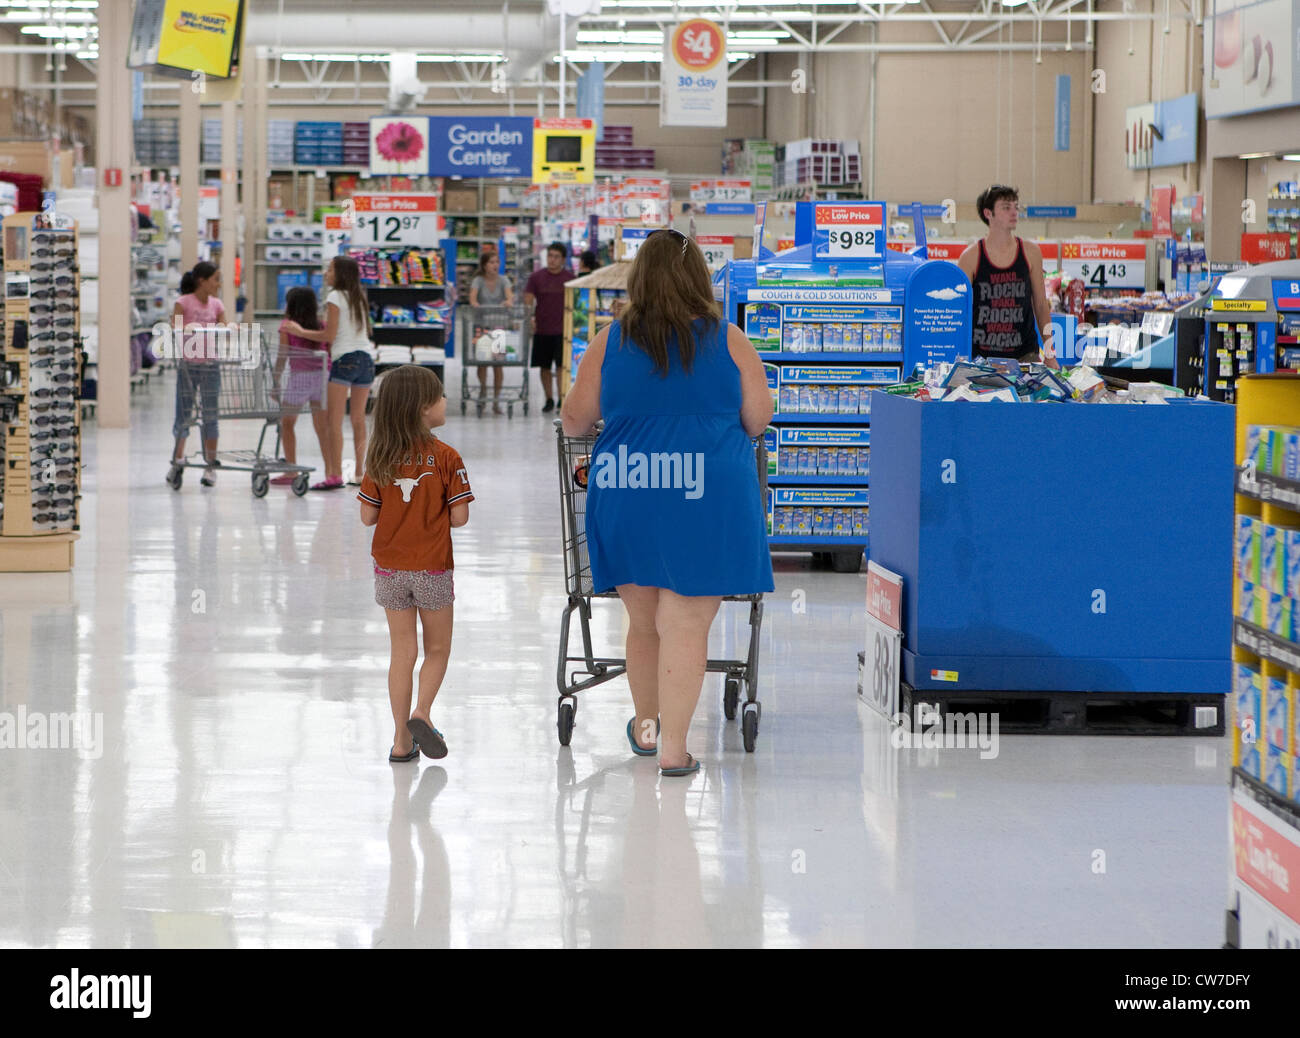 Overweight female customer pushes shopping cart while shopping with daughter at Wal-Mart store in San Marcos, Texas - Stock Image